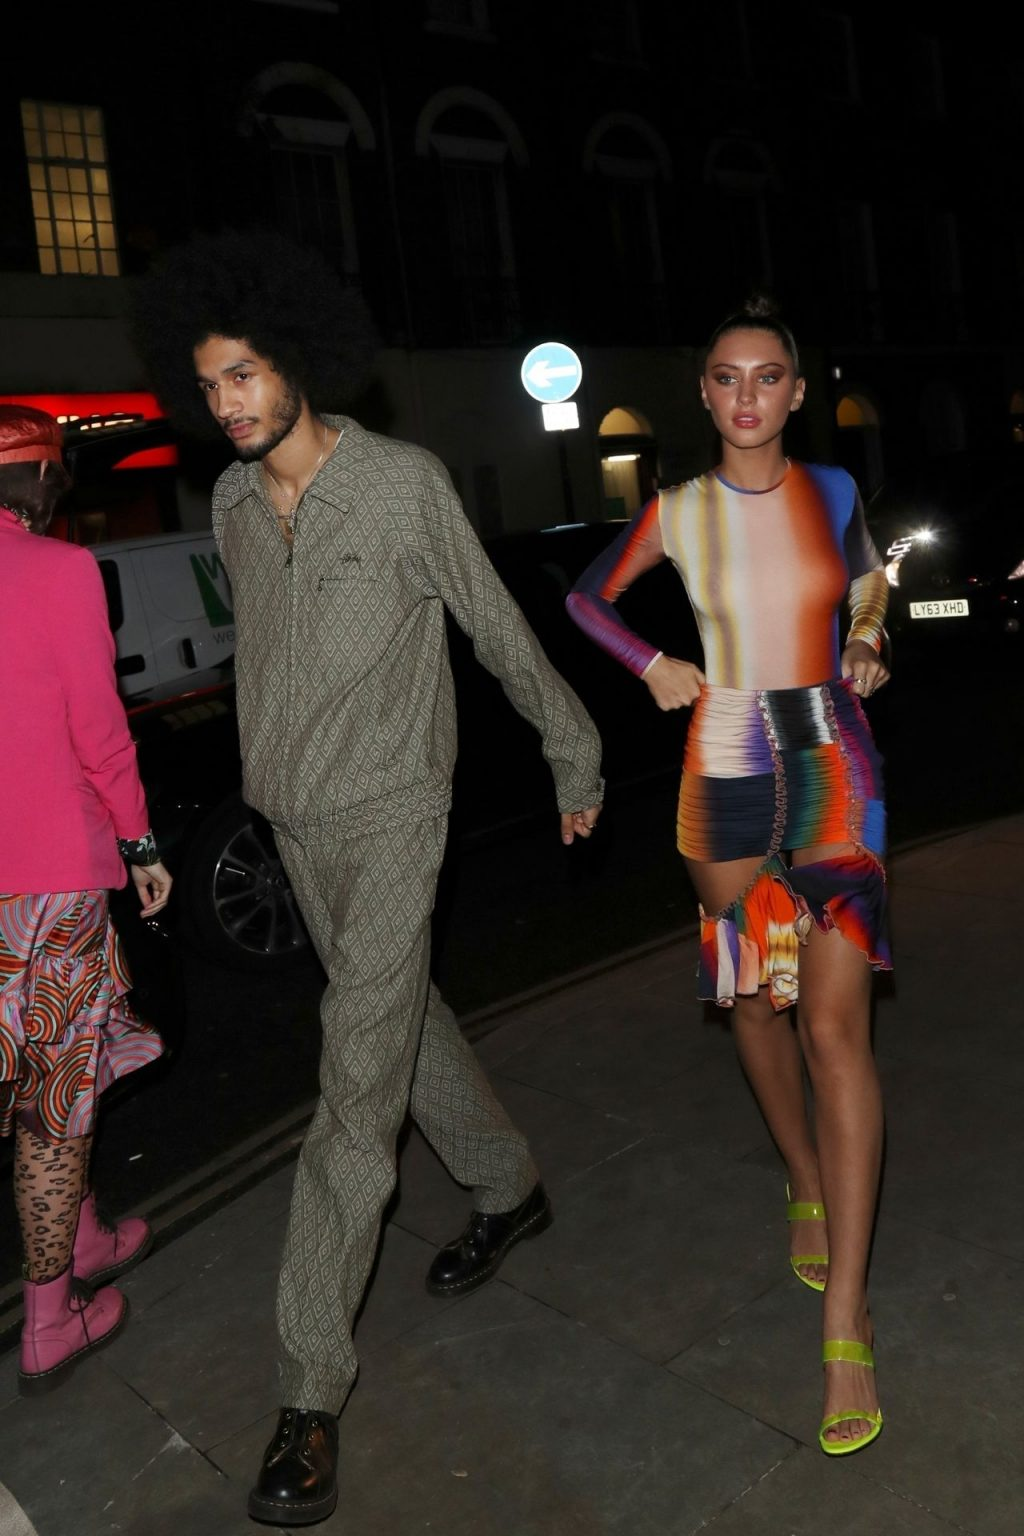 Braless Iris Law Seen at the Love Magazine Party Wearing a Multicolored Outfit (42 Photos)